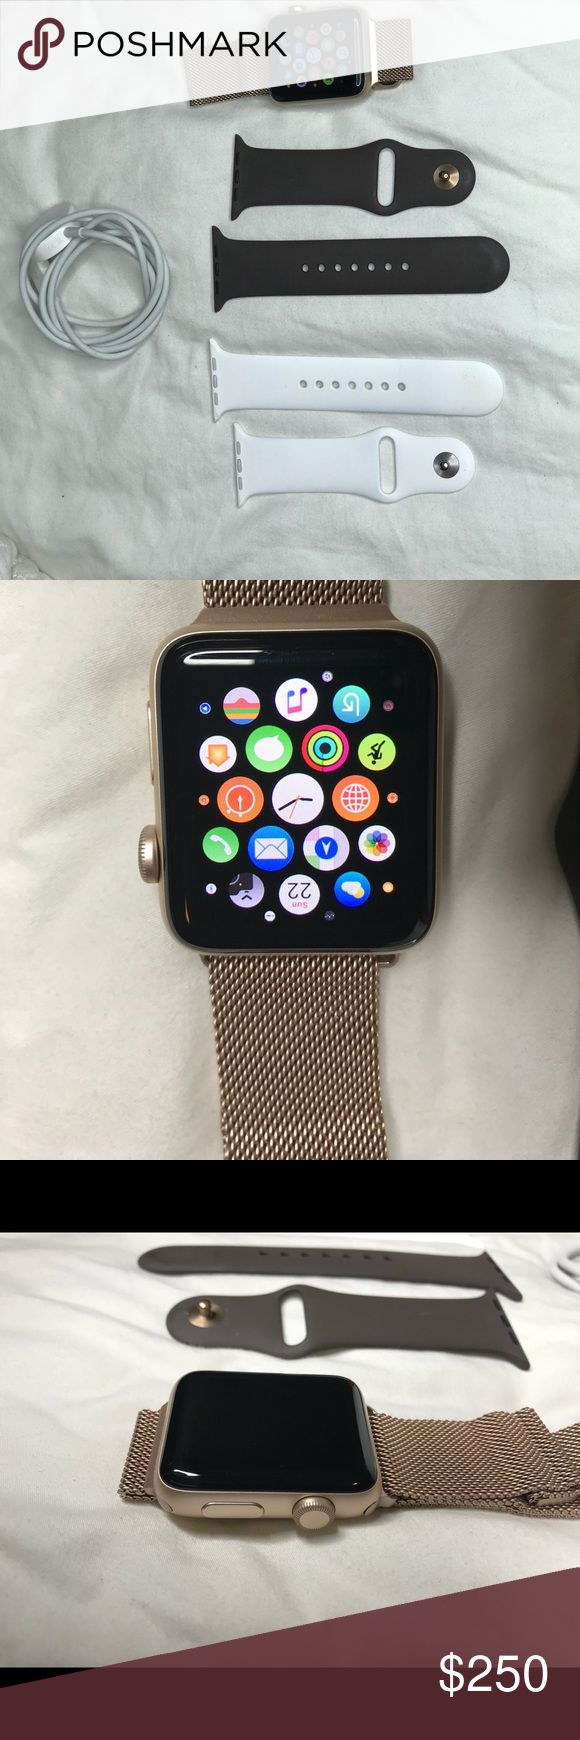 Apple Watch Series 2 42mm Gold Apple Watch. Excellent condition. No visible signs of wear. No scratches or marks on Watch face. Come with Black, white, gold band & charger. Box not included. I am the original owner. Purchased in 2017. Apple Accessories Watches